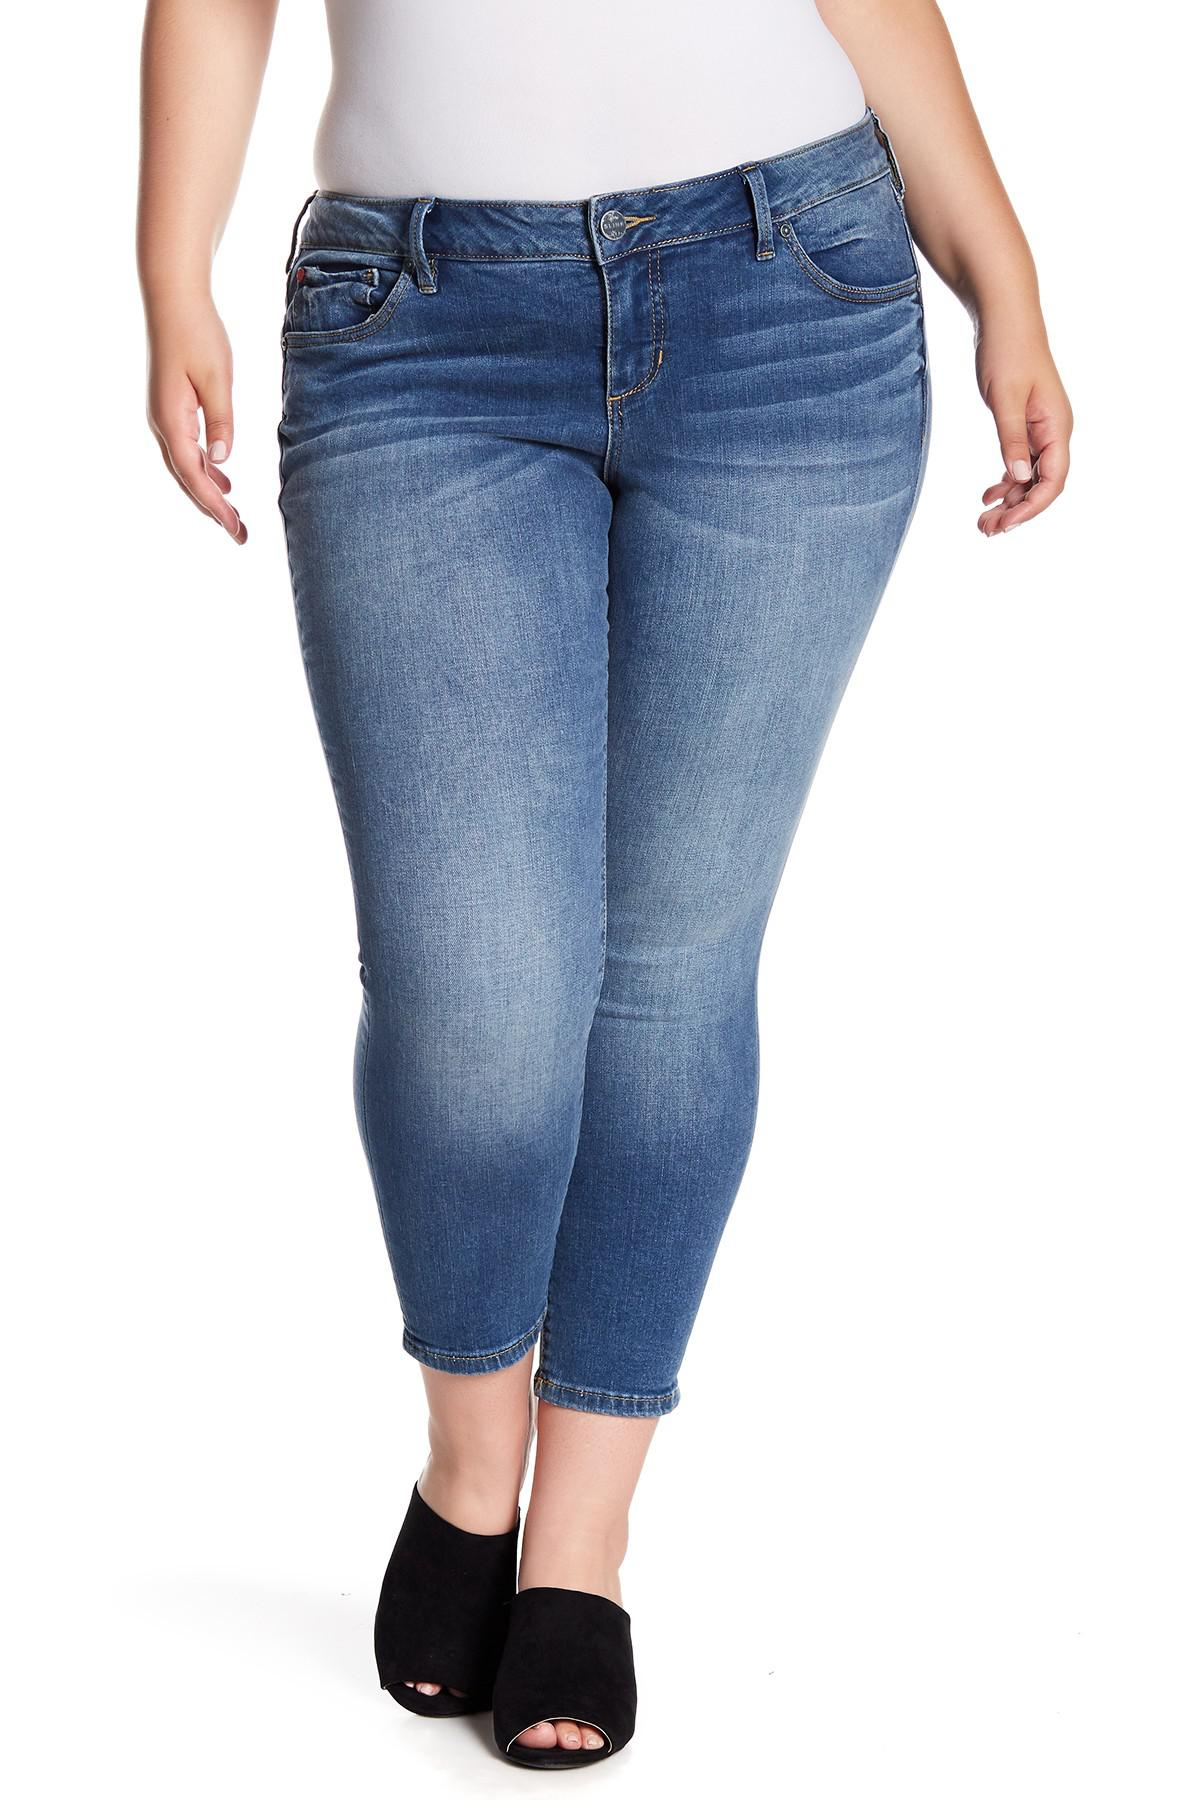 3ad22ea14abc3 Lyst - Slink Jeans Stretch Ankle Jeggings (plus Size) in Blue